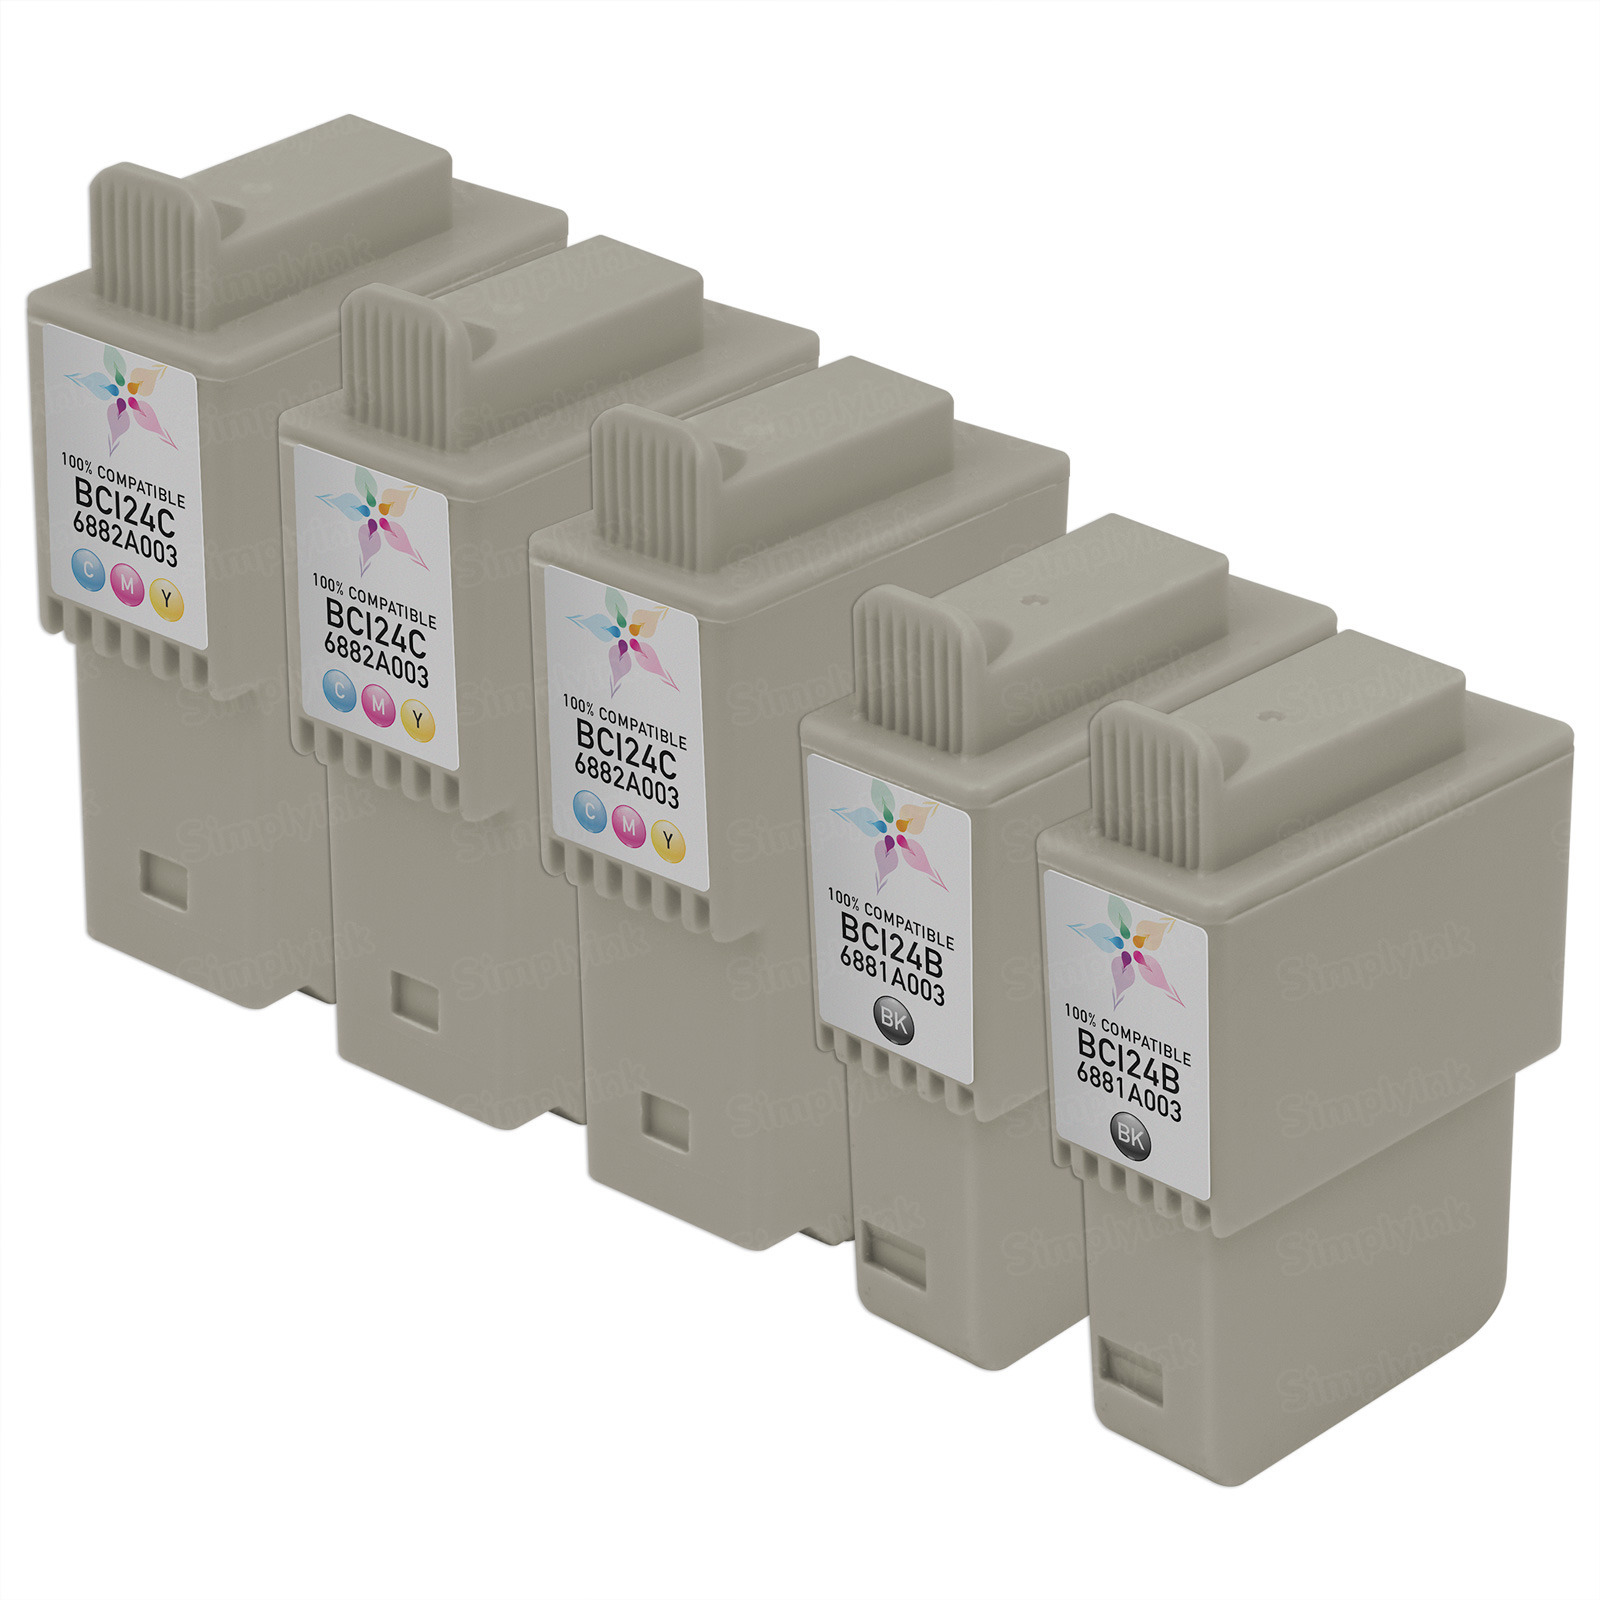 Inkjet Supplies for Canon Printers - Remanufactured Bulk Set of 5 Ink Cartridges - 3 Black Canon BCI24B and 2 Color Canon BCI24C